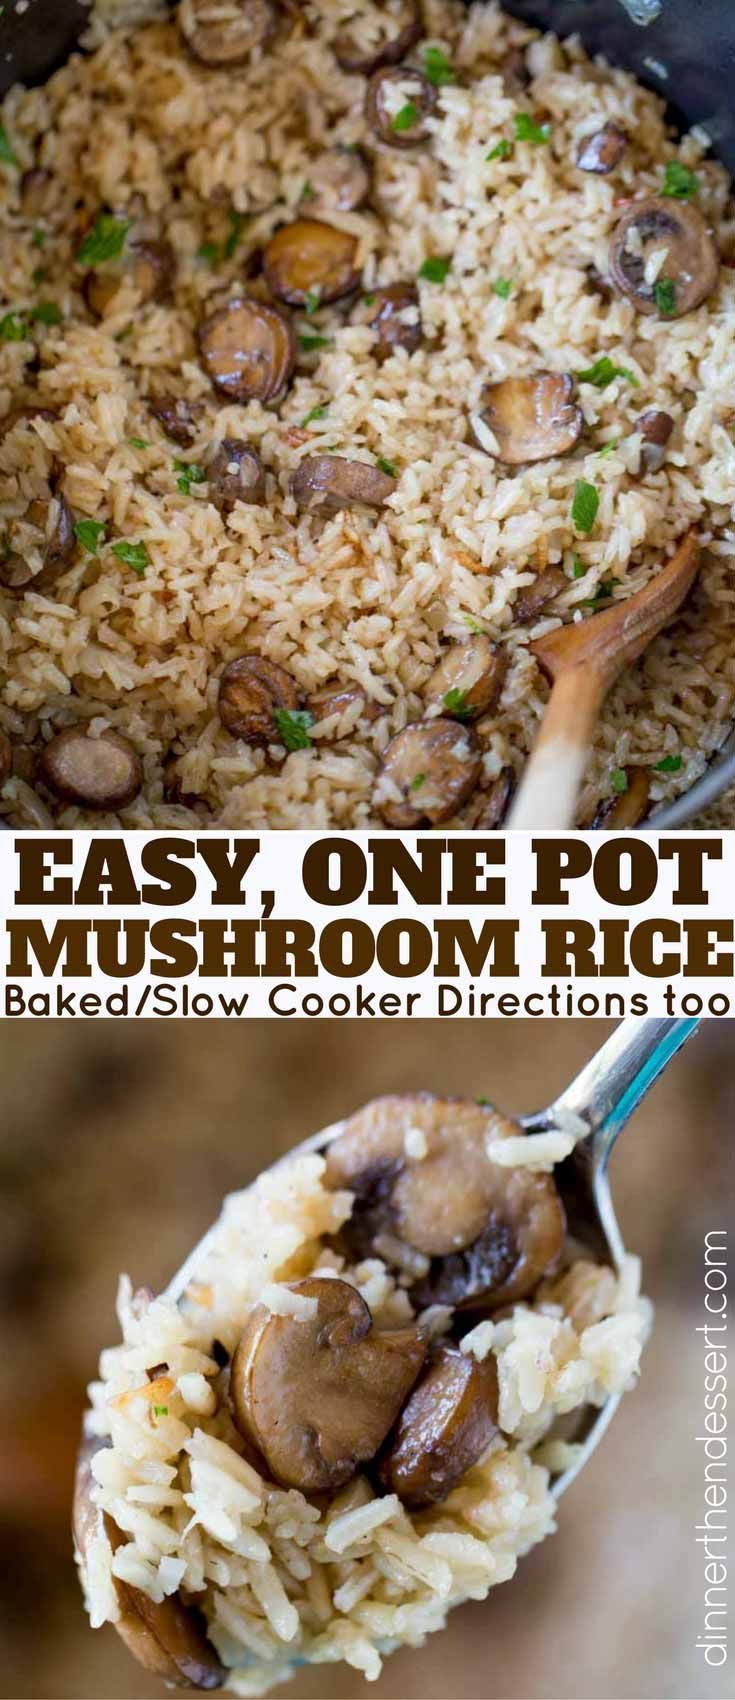 One pot mushroom rice the best most buttery and mushroom y rice one pot mushroom rice the best most buttery and mushroom y rice youll ever make a perfect holiday side dish ccuart Gallery